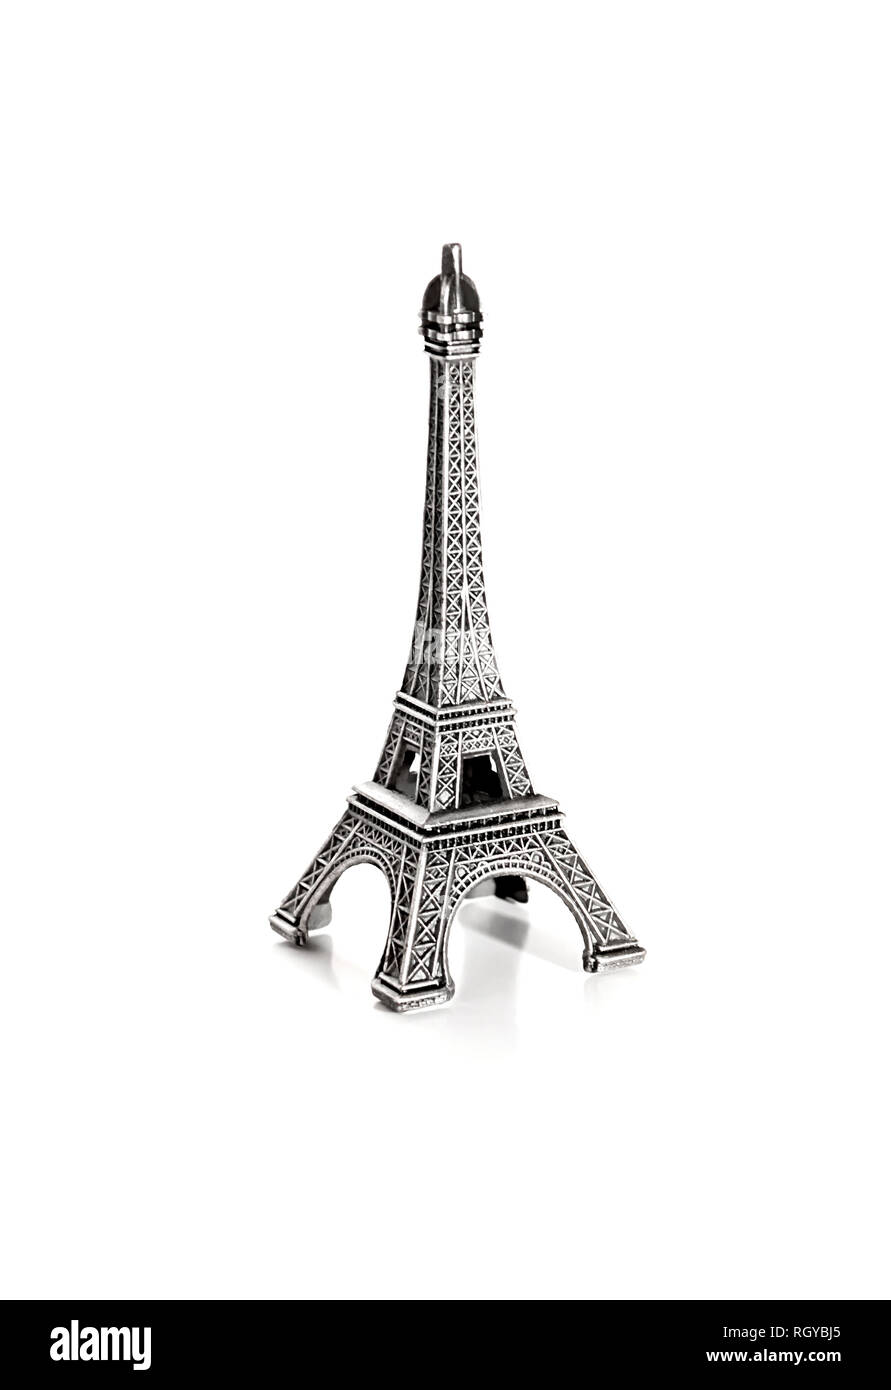 small copy of eiffel tower on white background - Stock Image